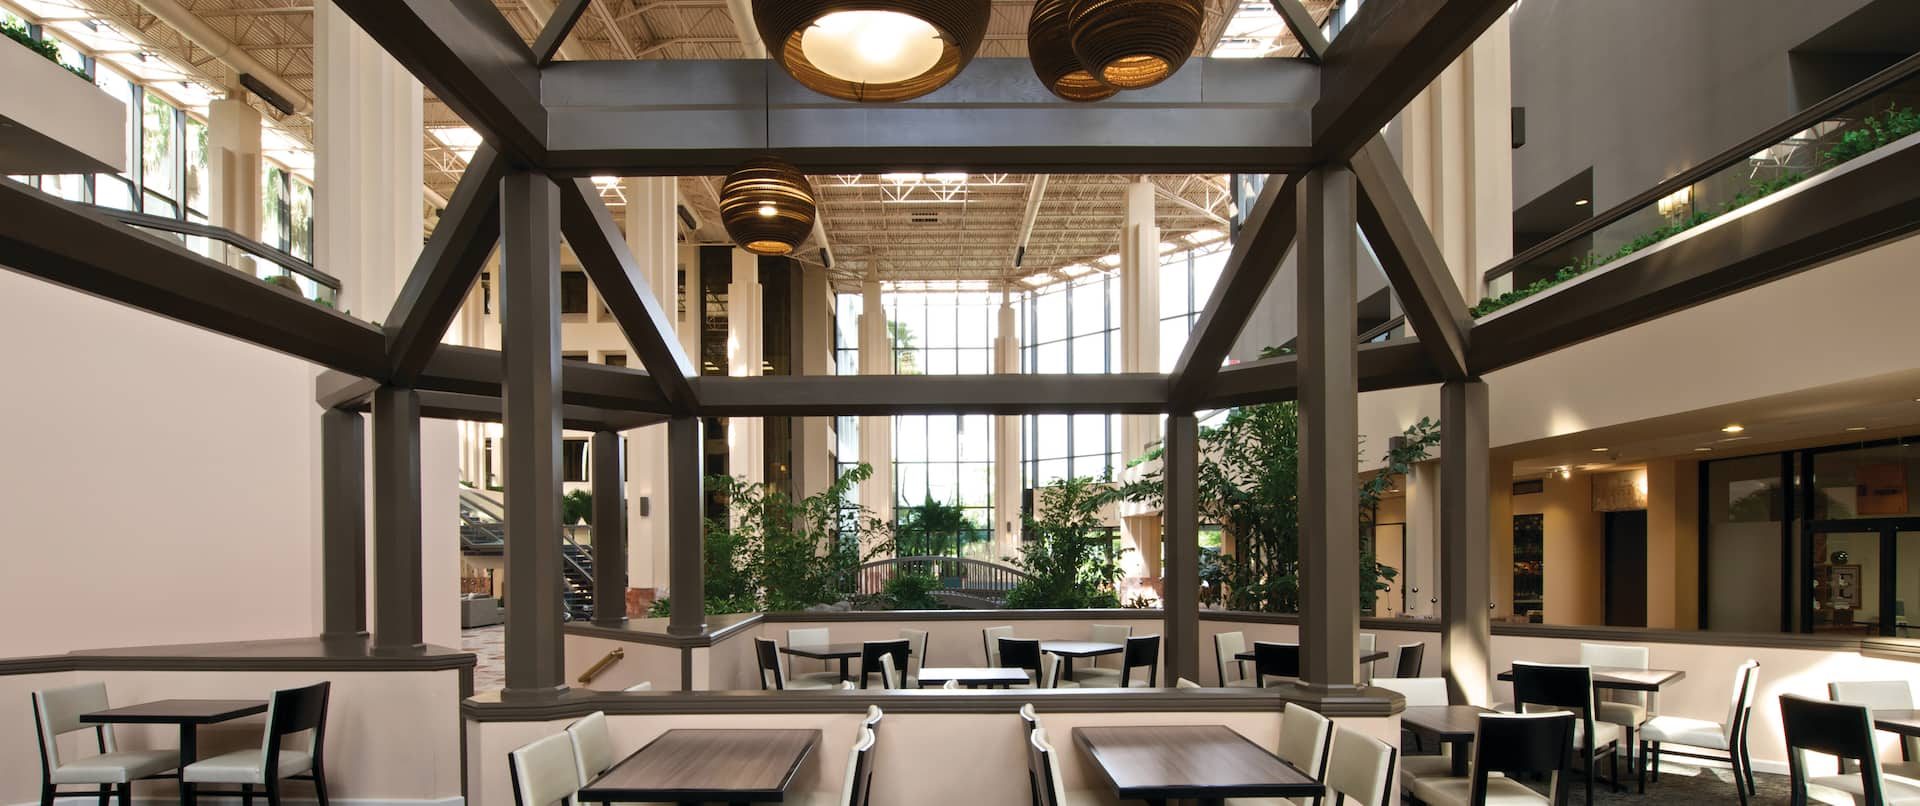 Dining Tables in Atrium-Style Lobby